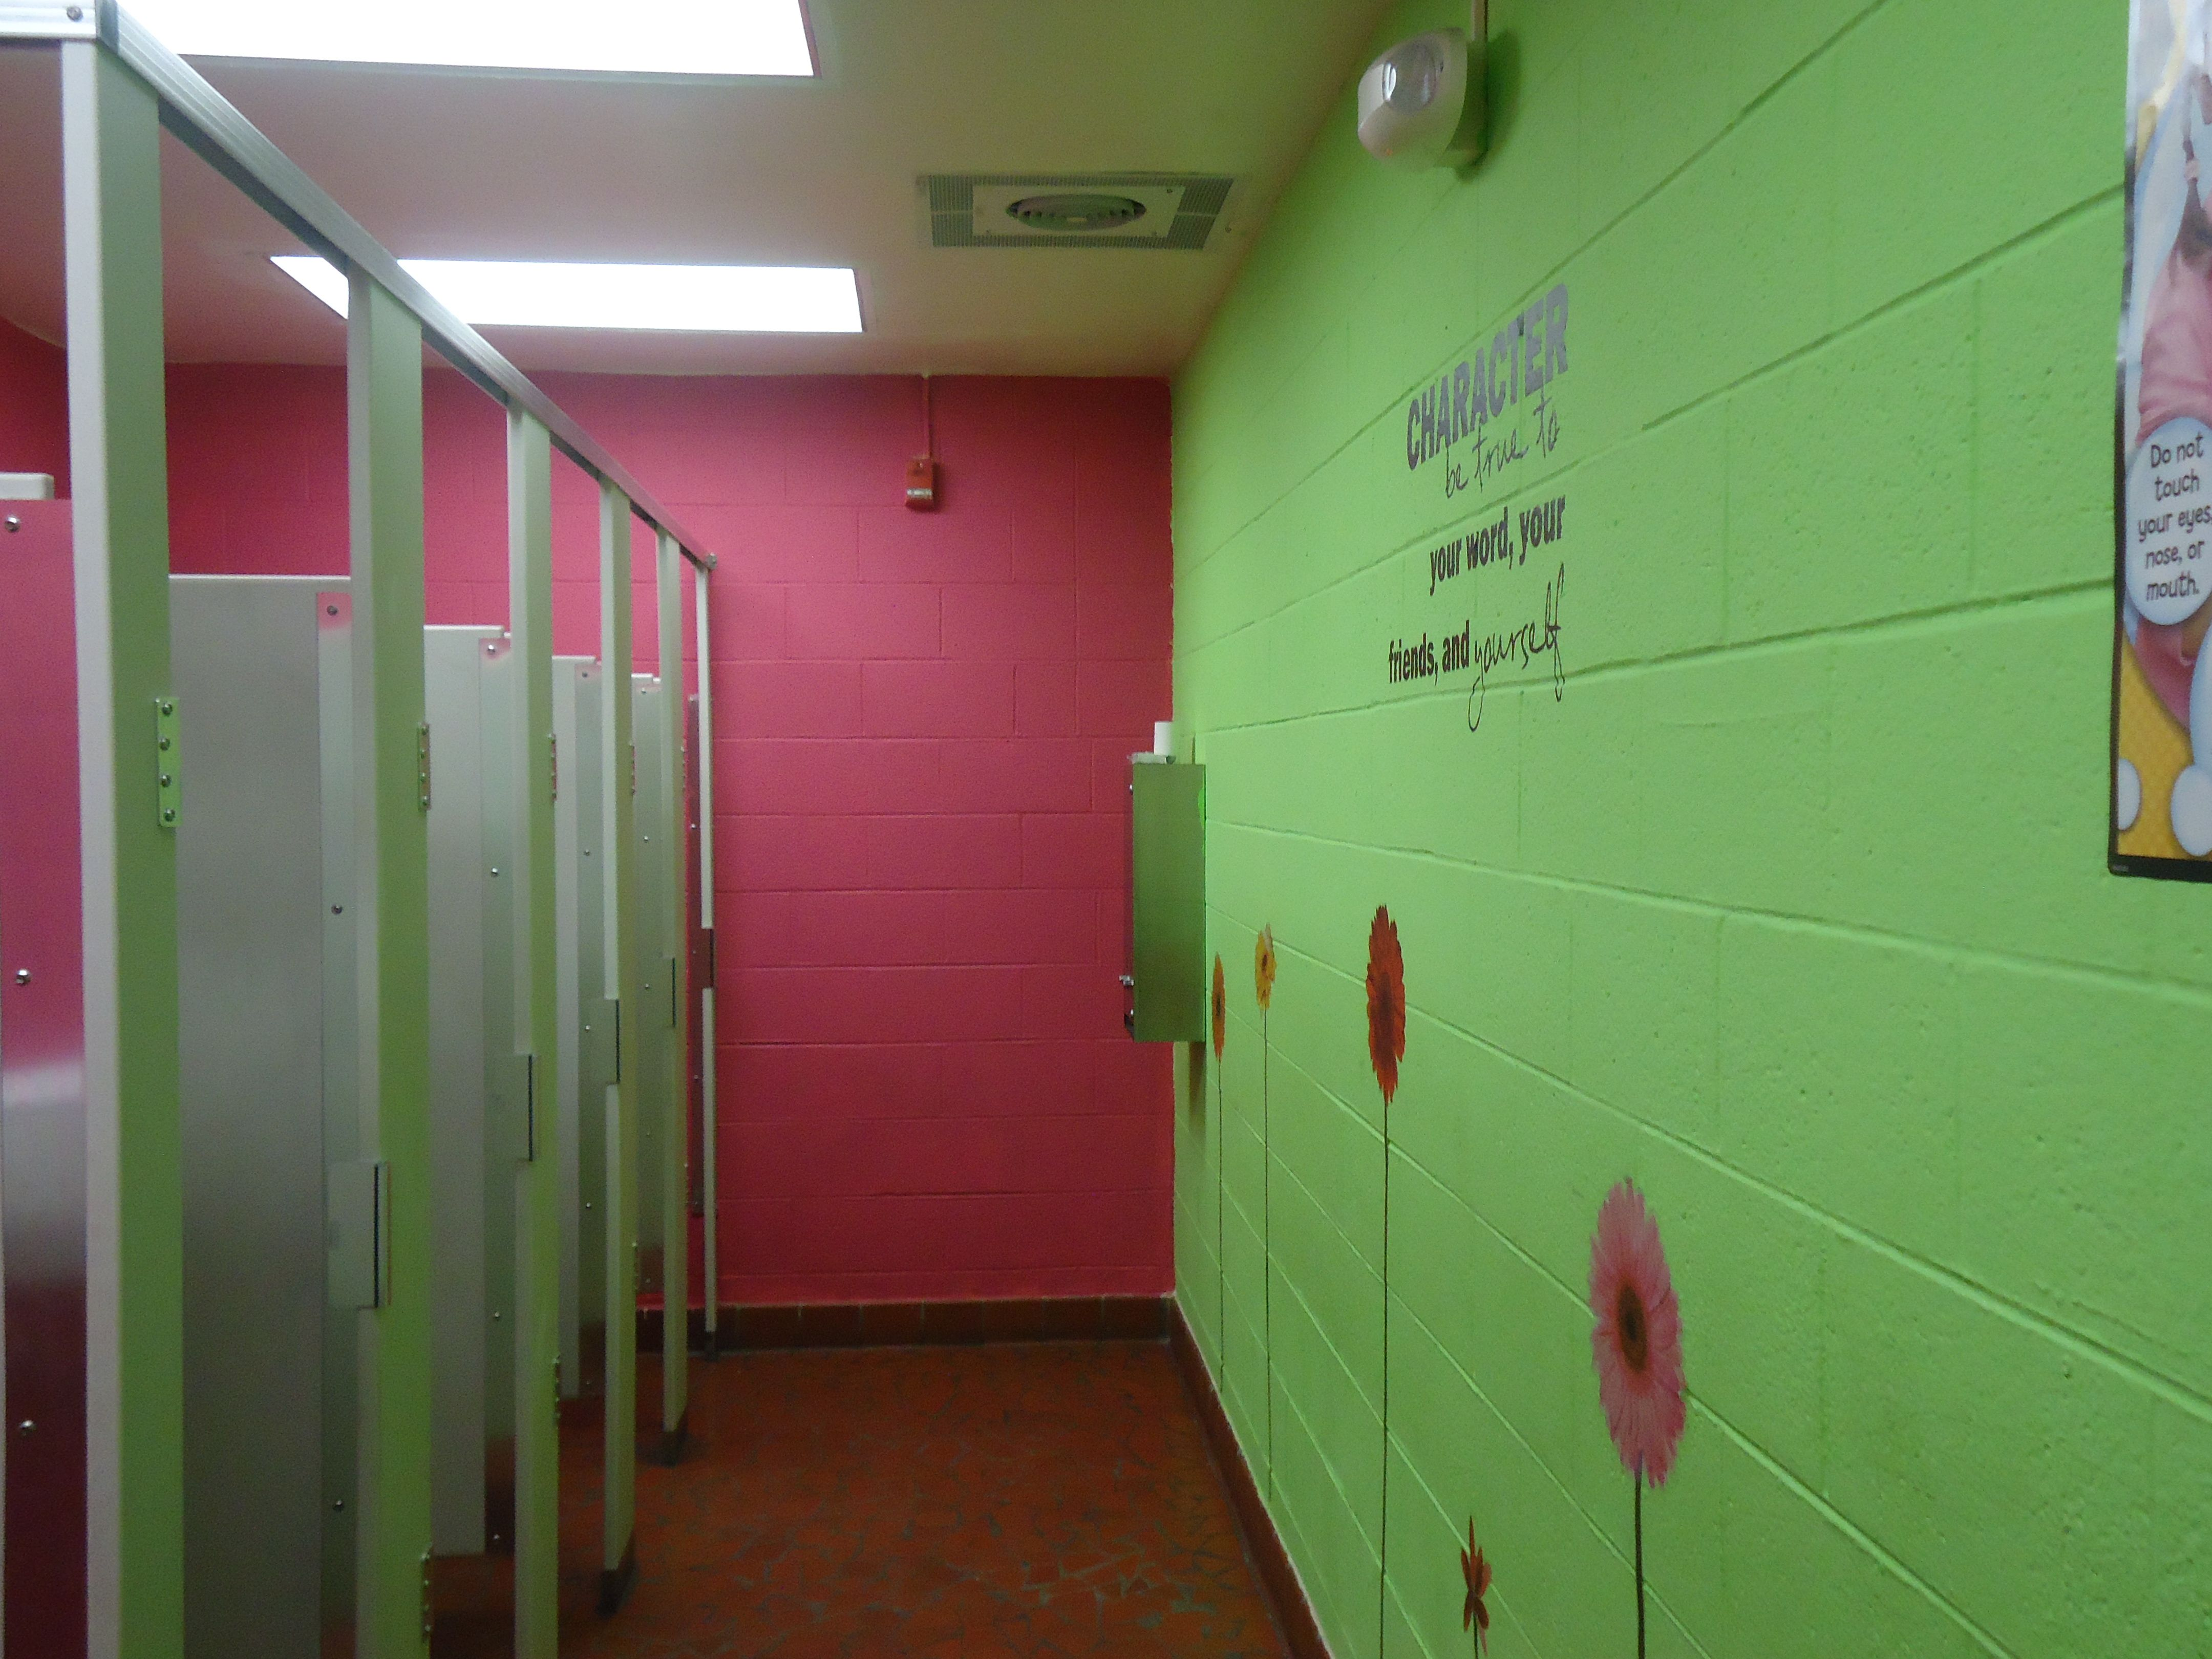 leaders deserve pretty places all over their school girls leaders deserve pretty places all over their school girls bathroom at st stephen elementary